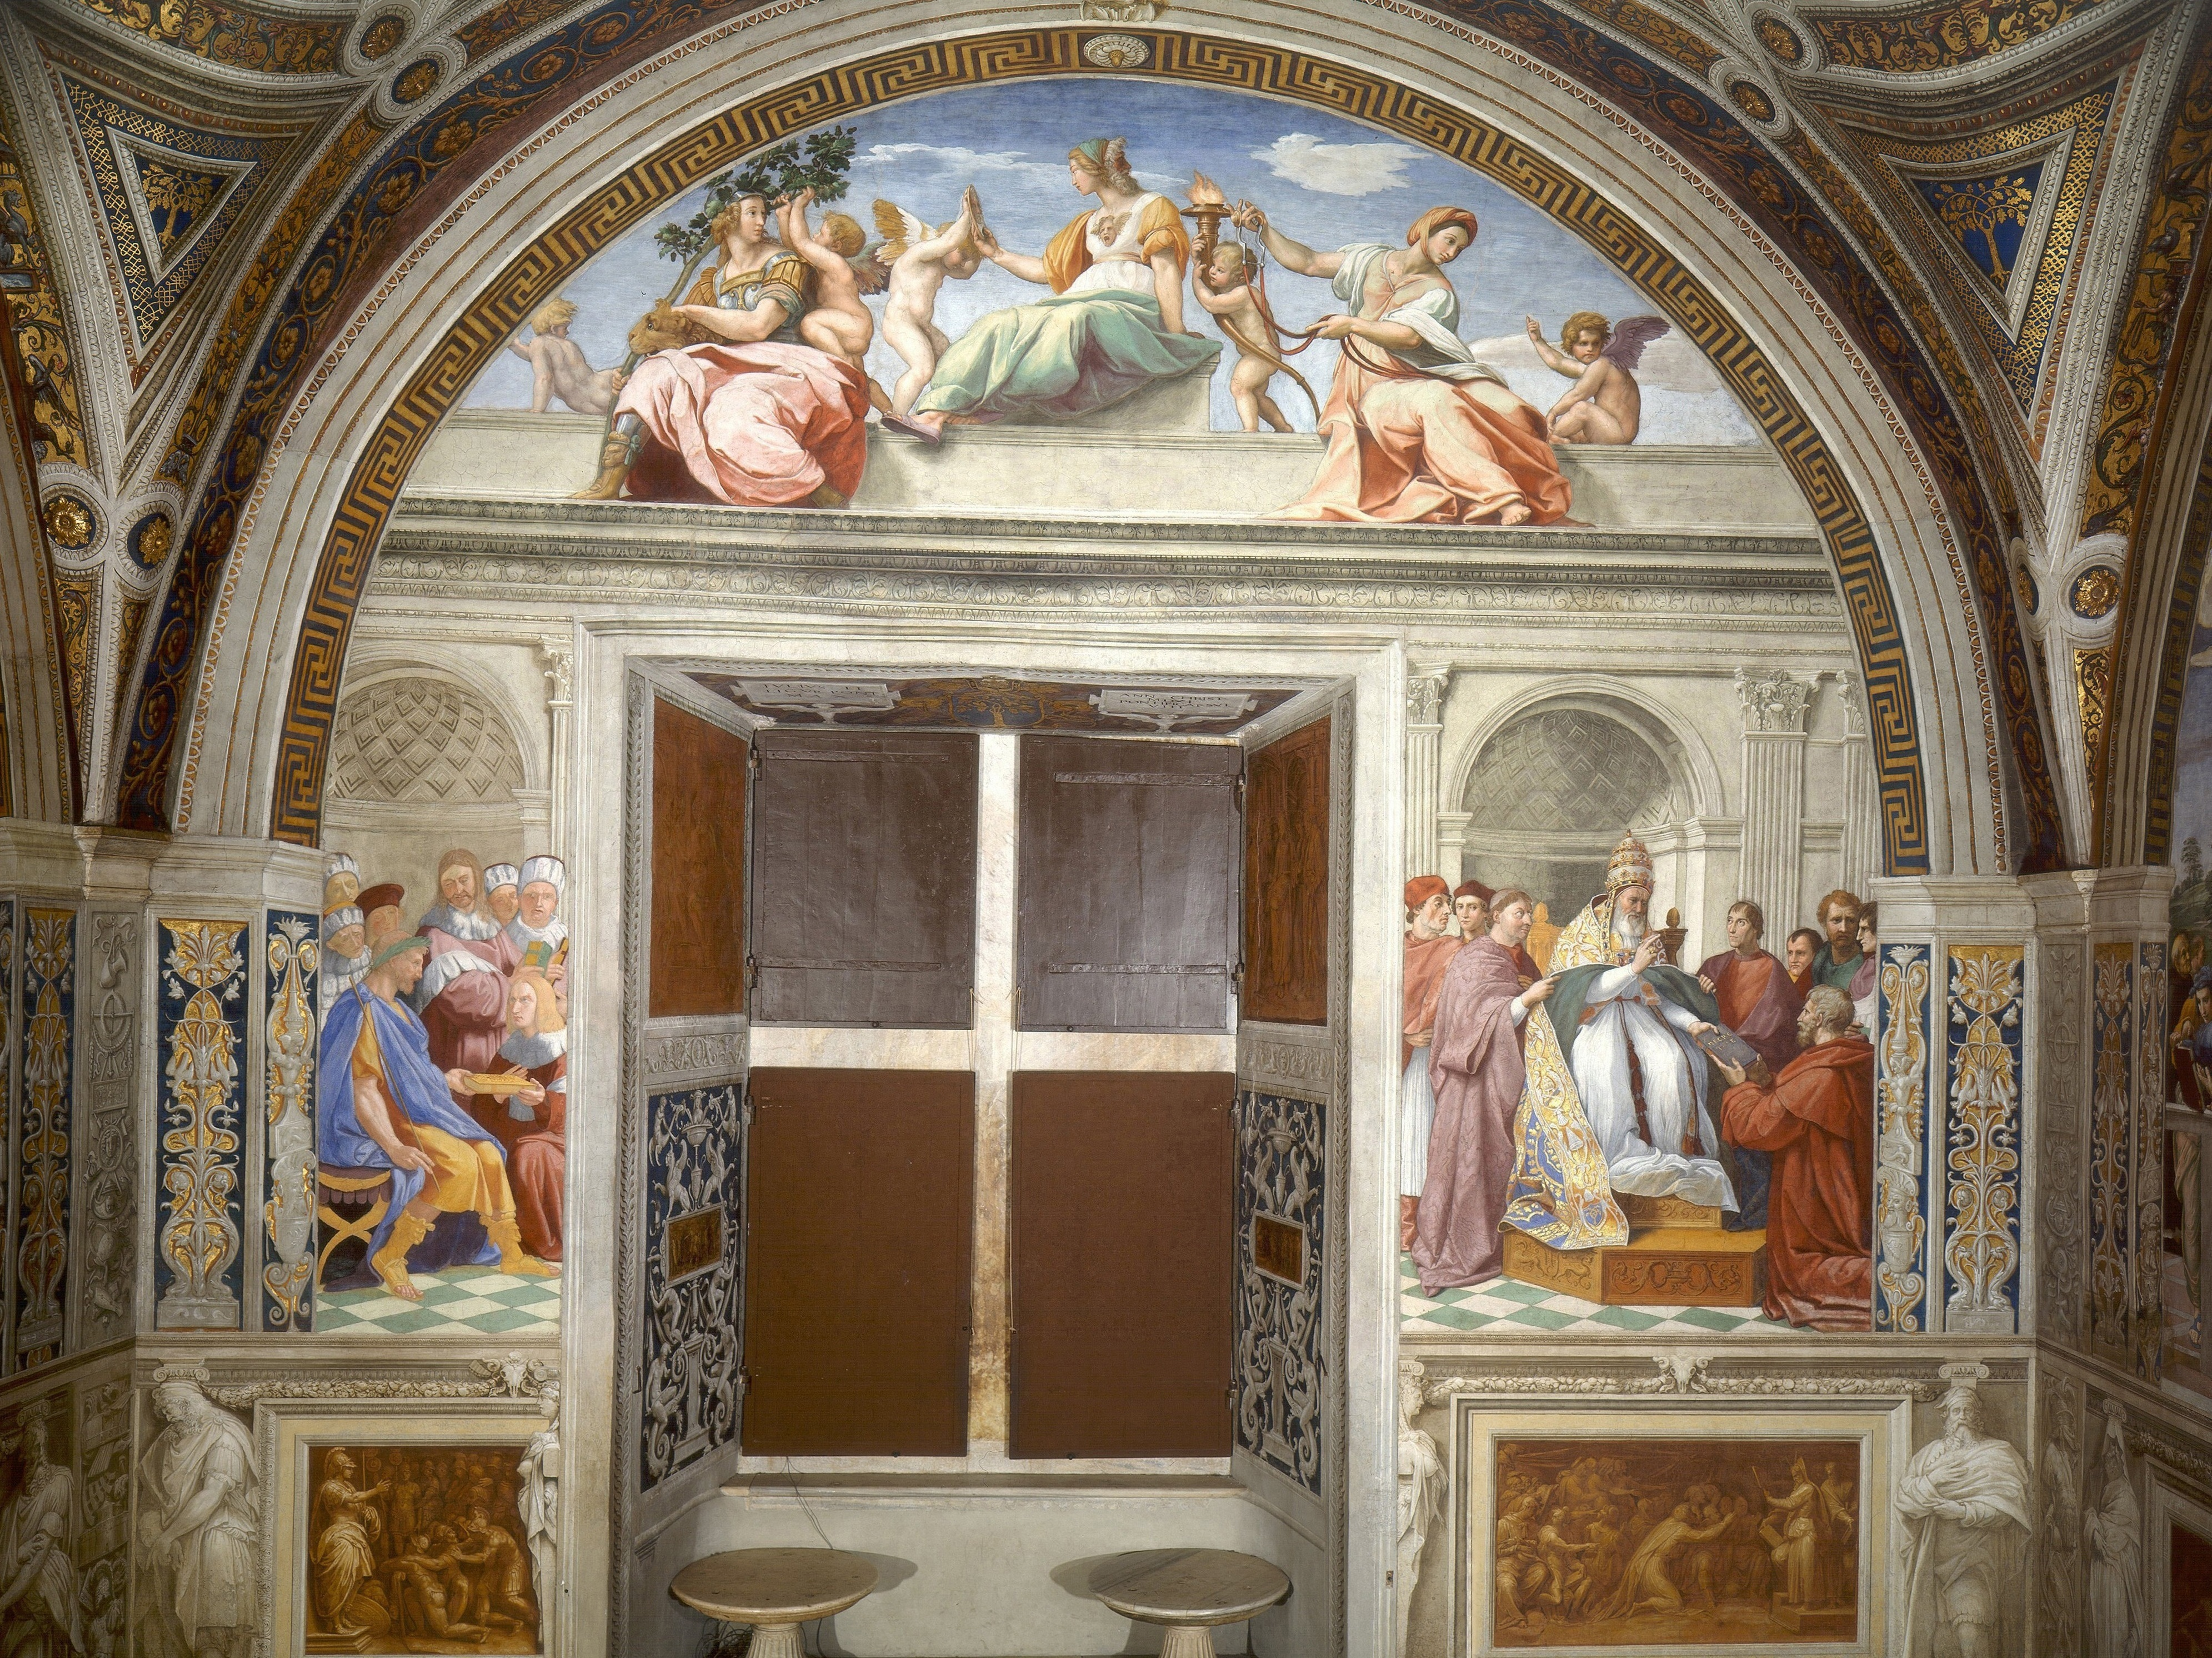 an analysis of the school of athens a fresco by rafael sanzio Raphael peers directly out to his audience in the school of athens fresco inside the vatican museum photo property of eurotravelogue™ unauthorized use is prohibited.